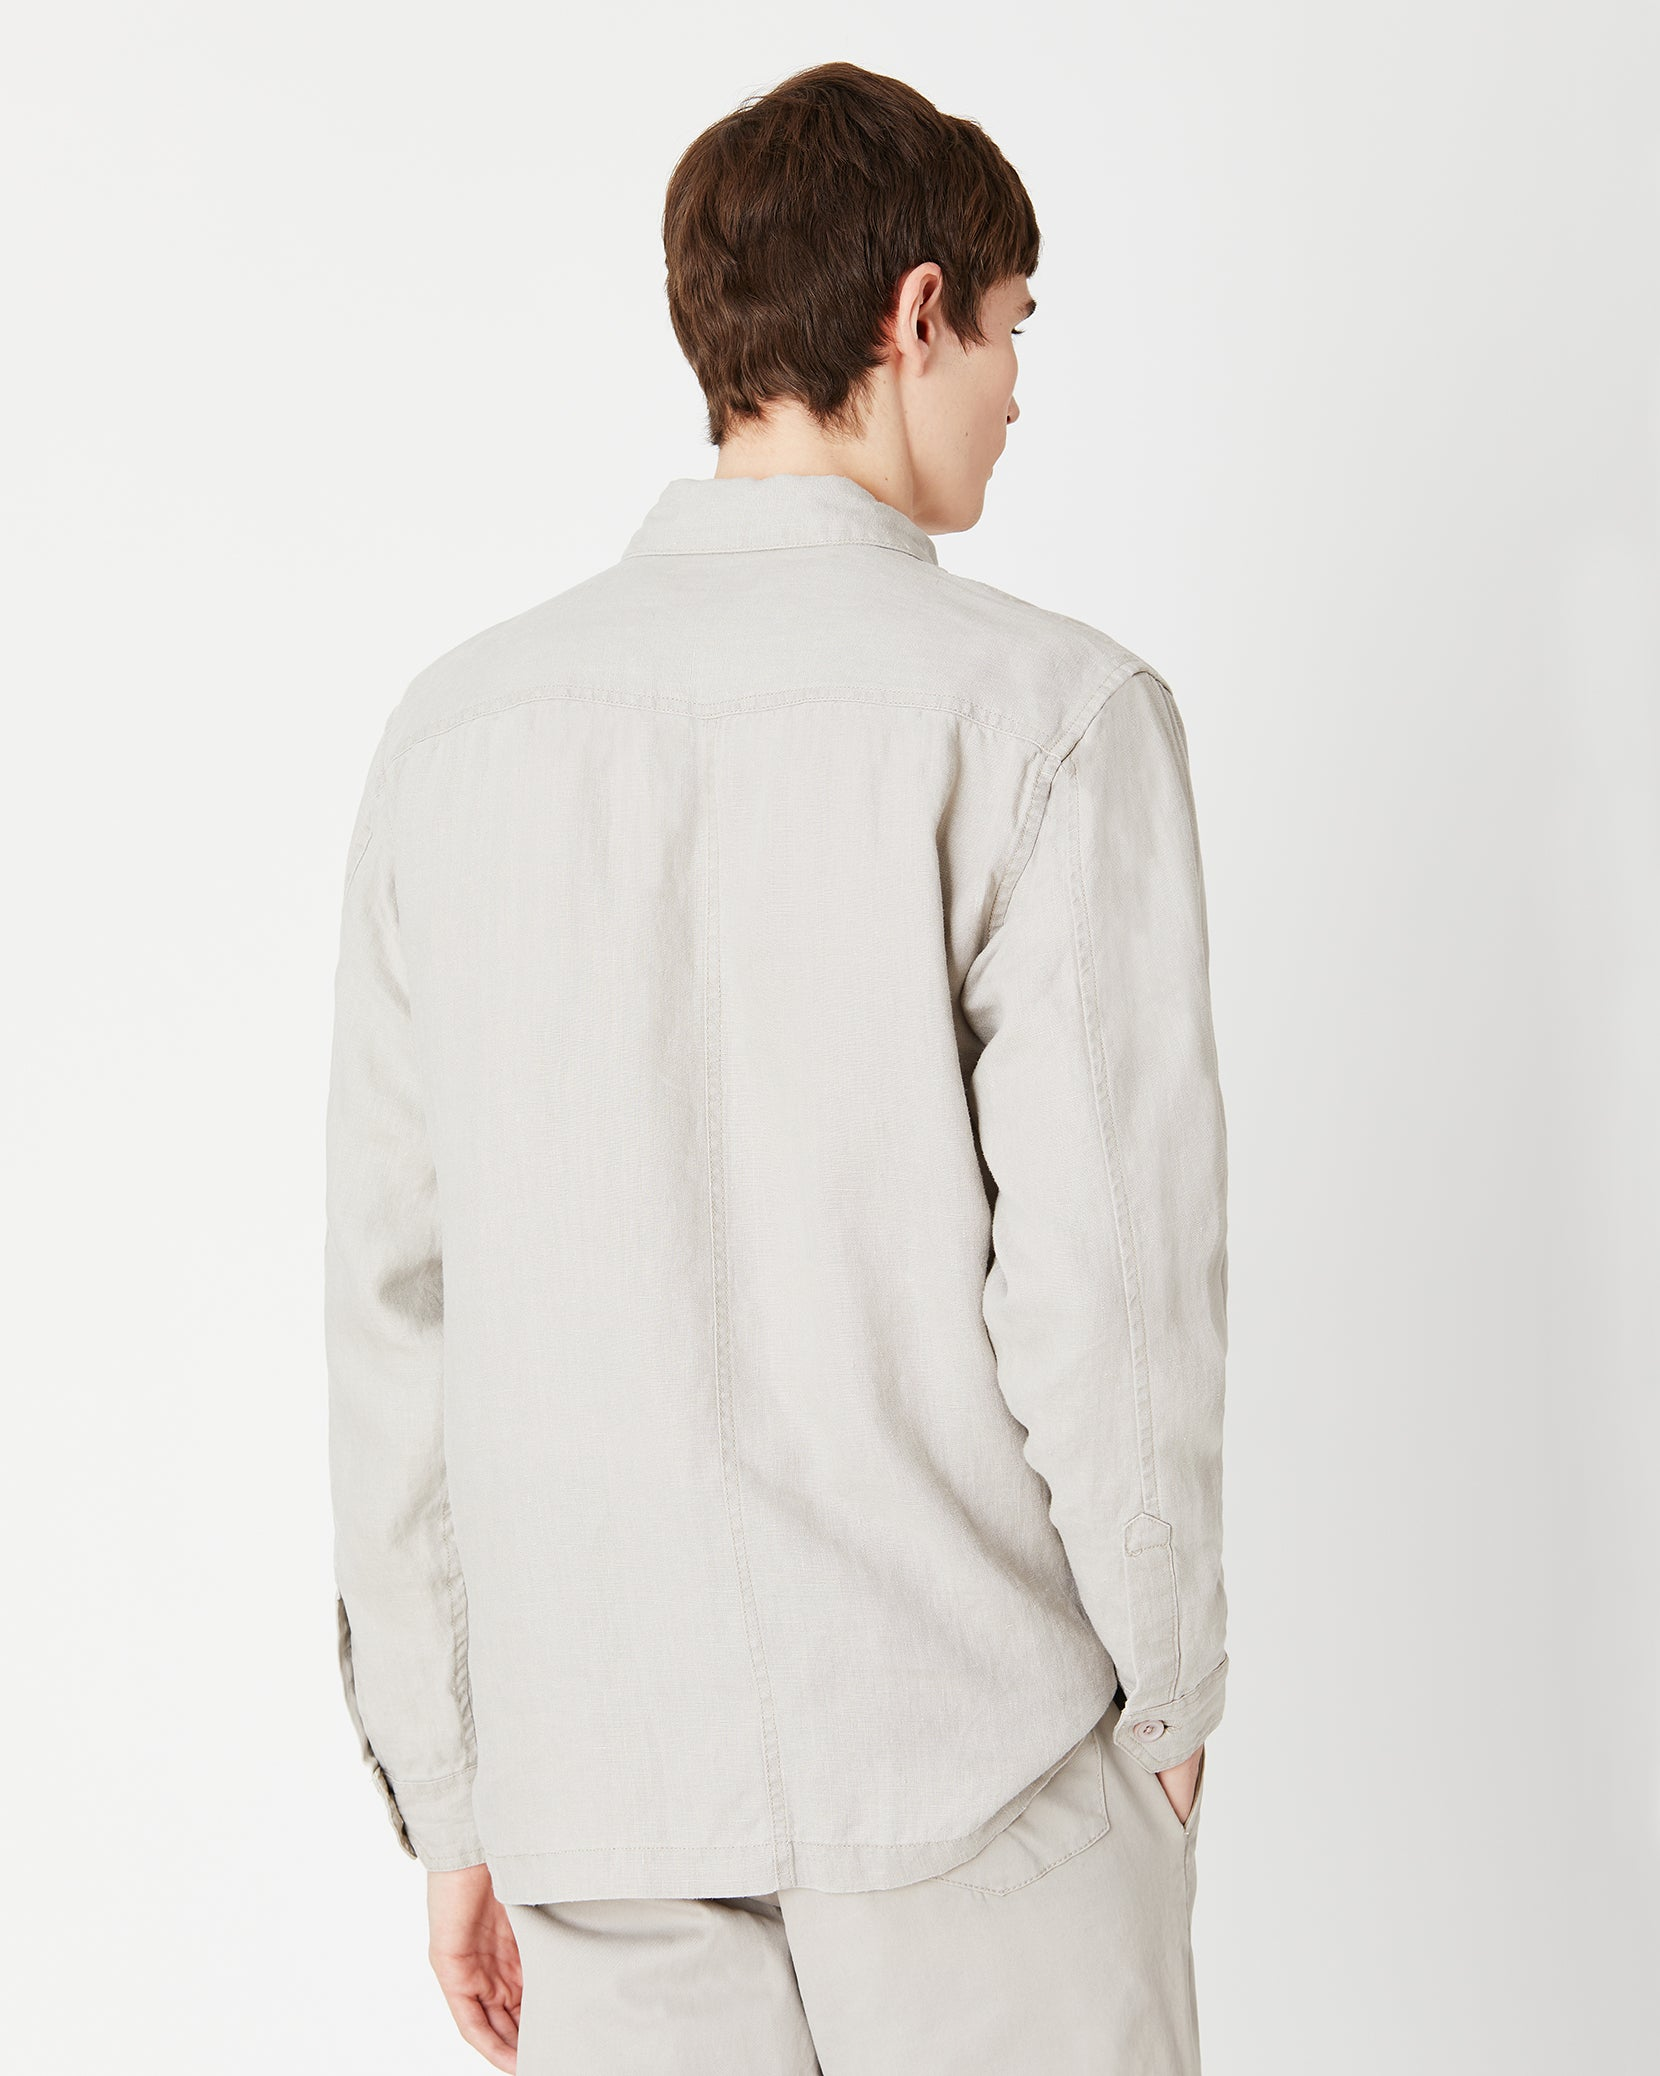 Linen Safari Jacket in Dune - 4 - Onia